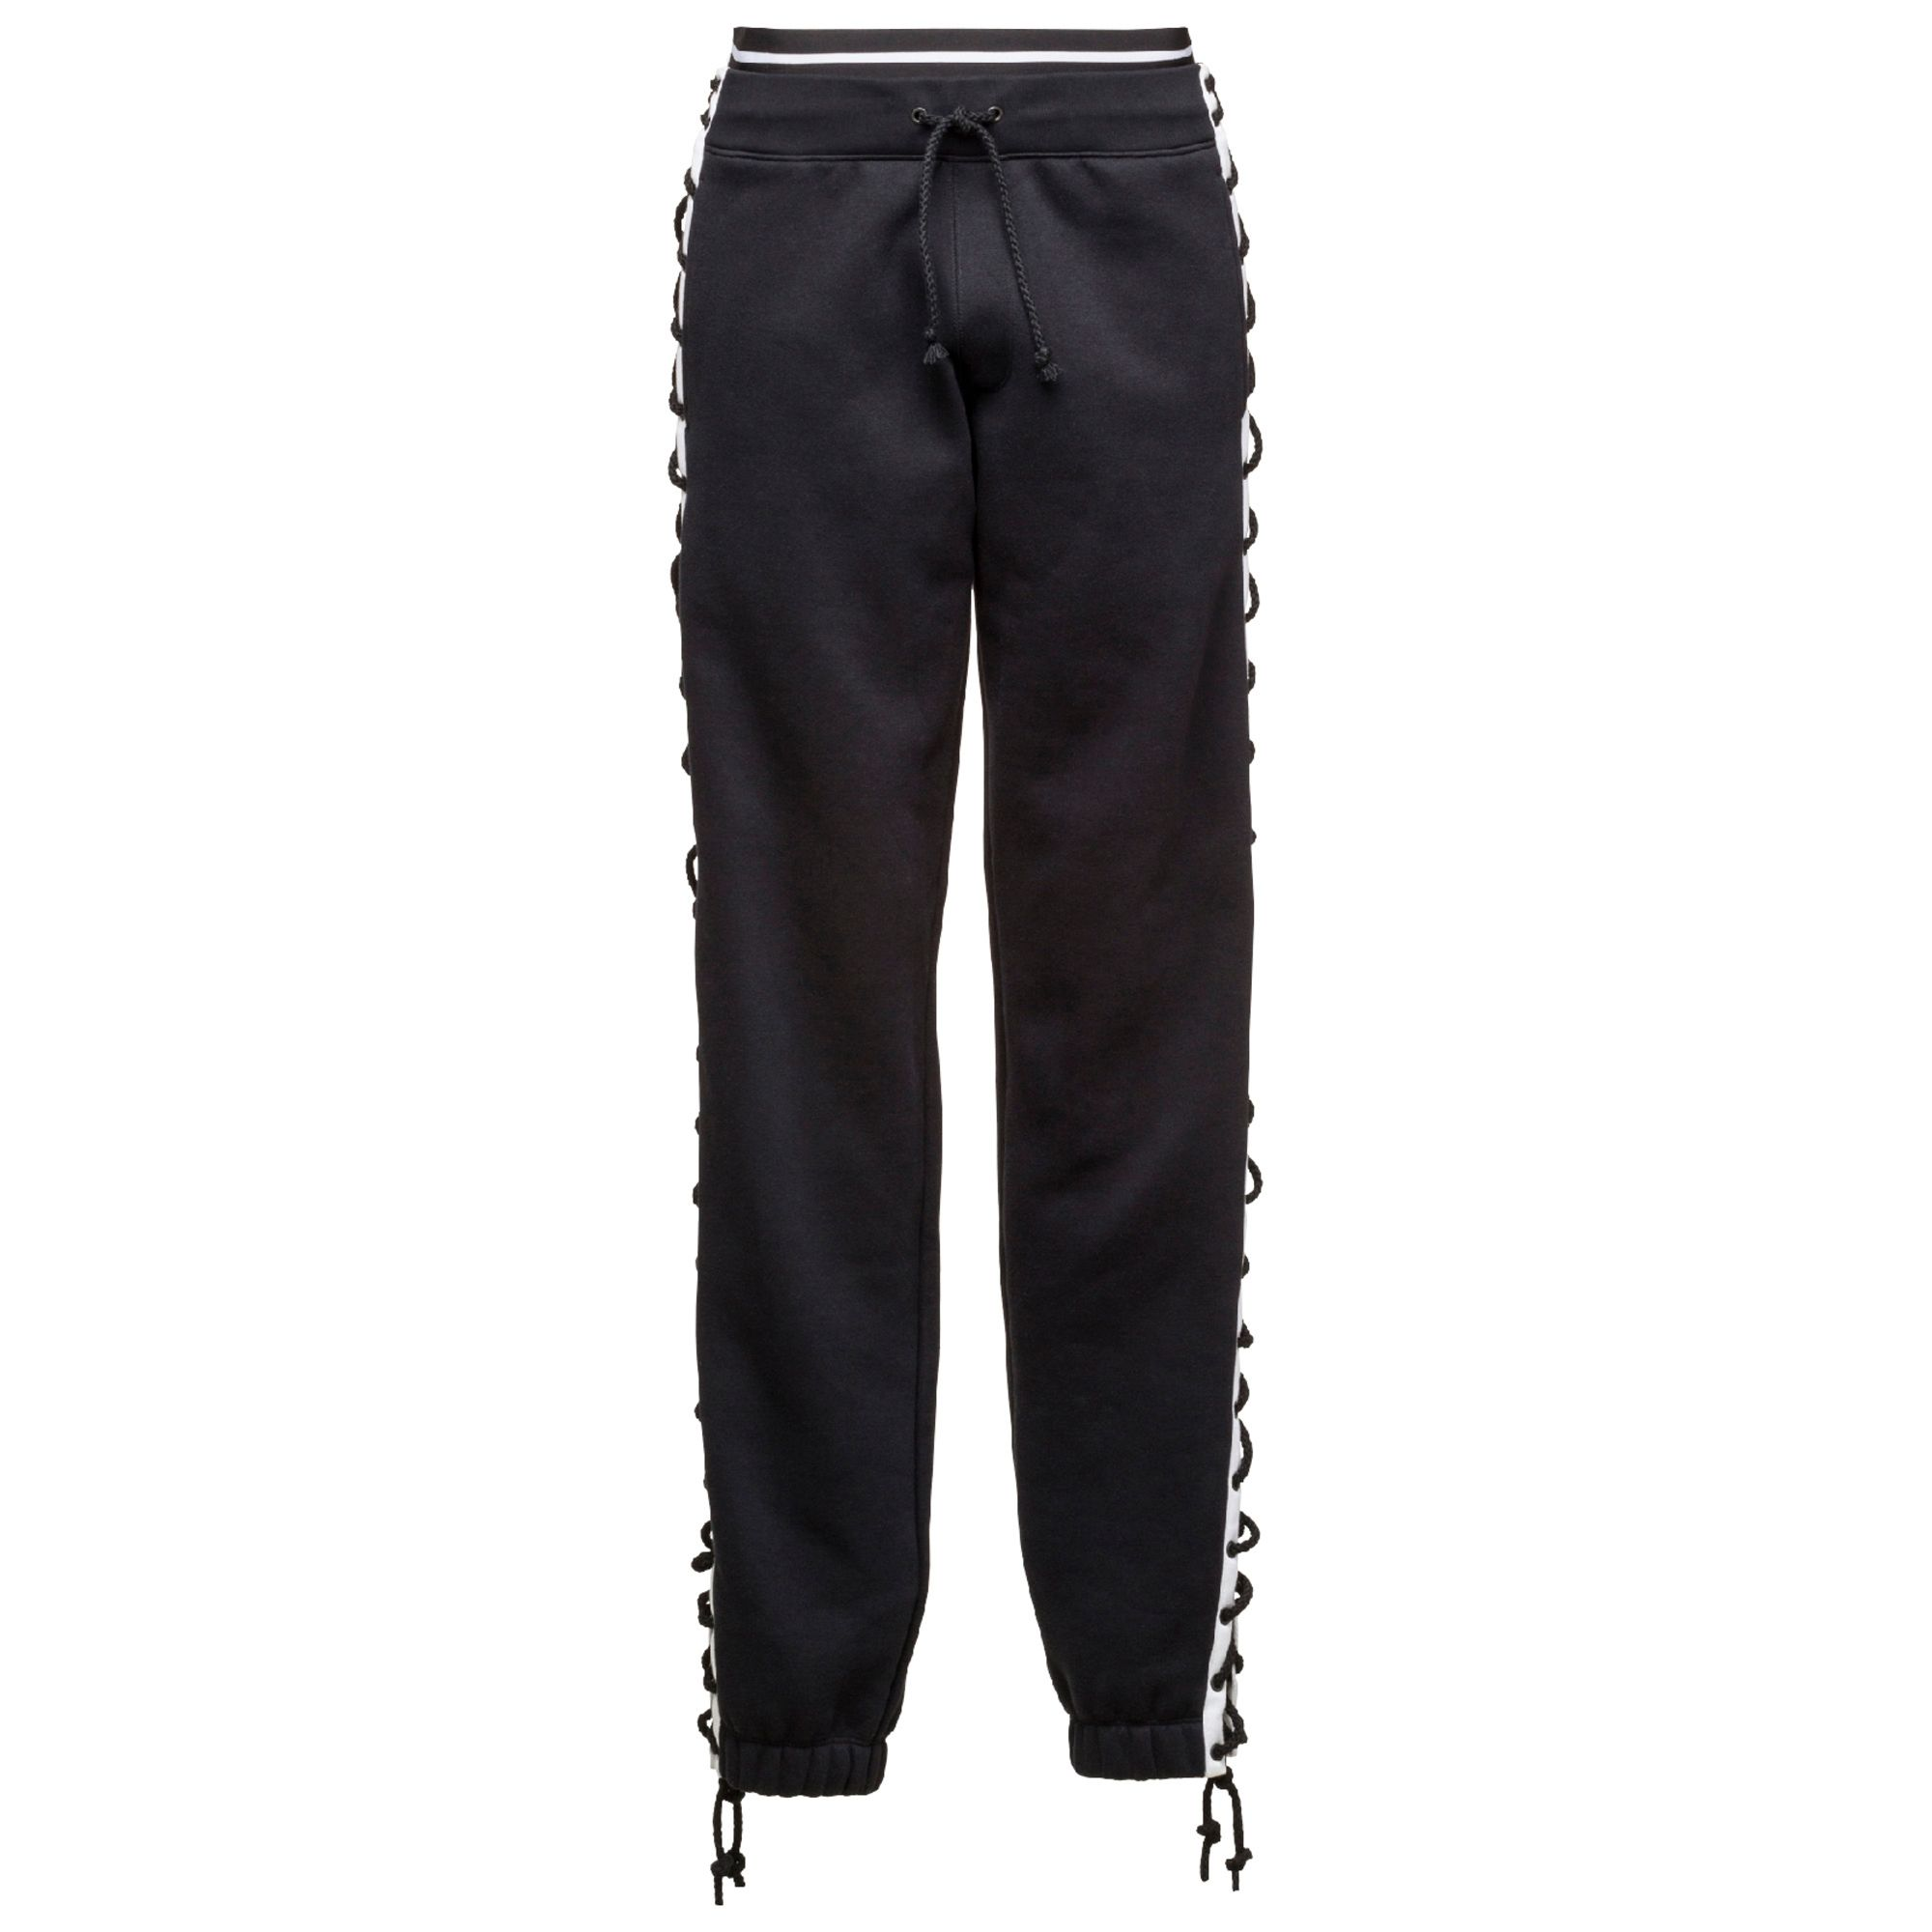 Artikel klicken und genauer betrachten! - The Lacing Sweatpants from the FENTY PUMA by Rihanna collection are daring with their skin-revealing side slits and unique rope lacing at the sides. The extra-long laces also offer versatility: Lace them tight for less exposure, or keep them loose to show some skin. Wrap them around your ankles, or tie them in a neat bow. | im Online Shop kaufen